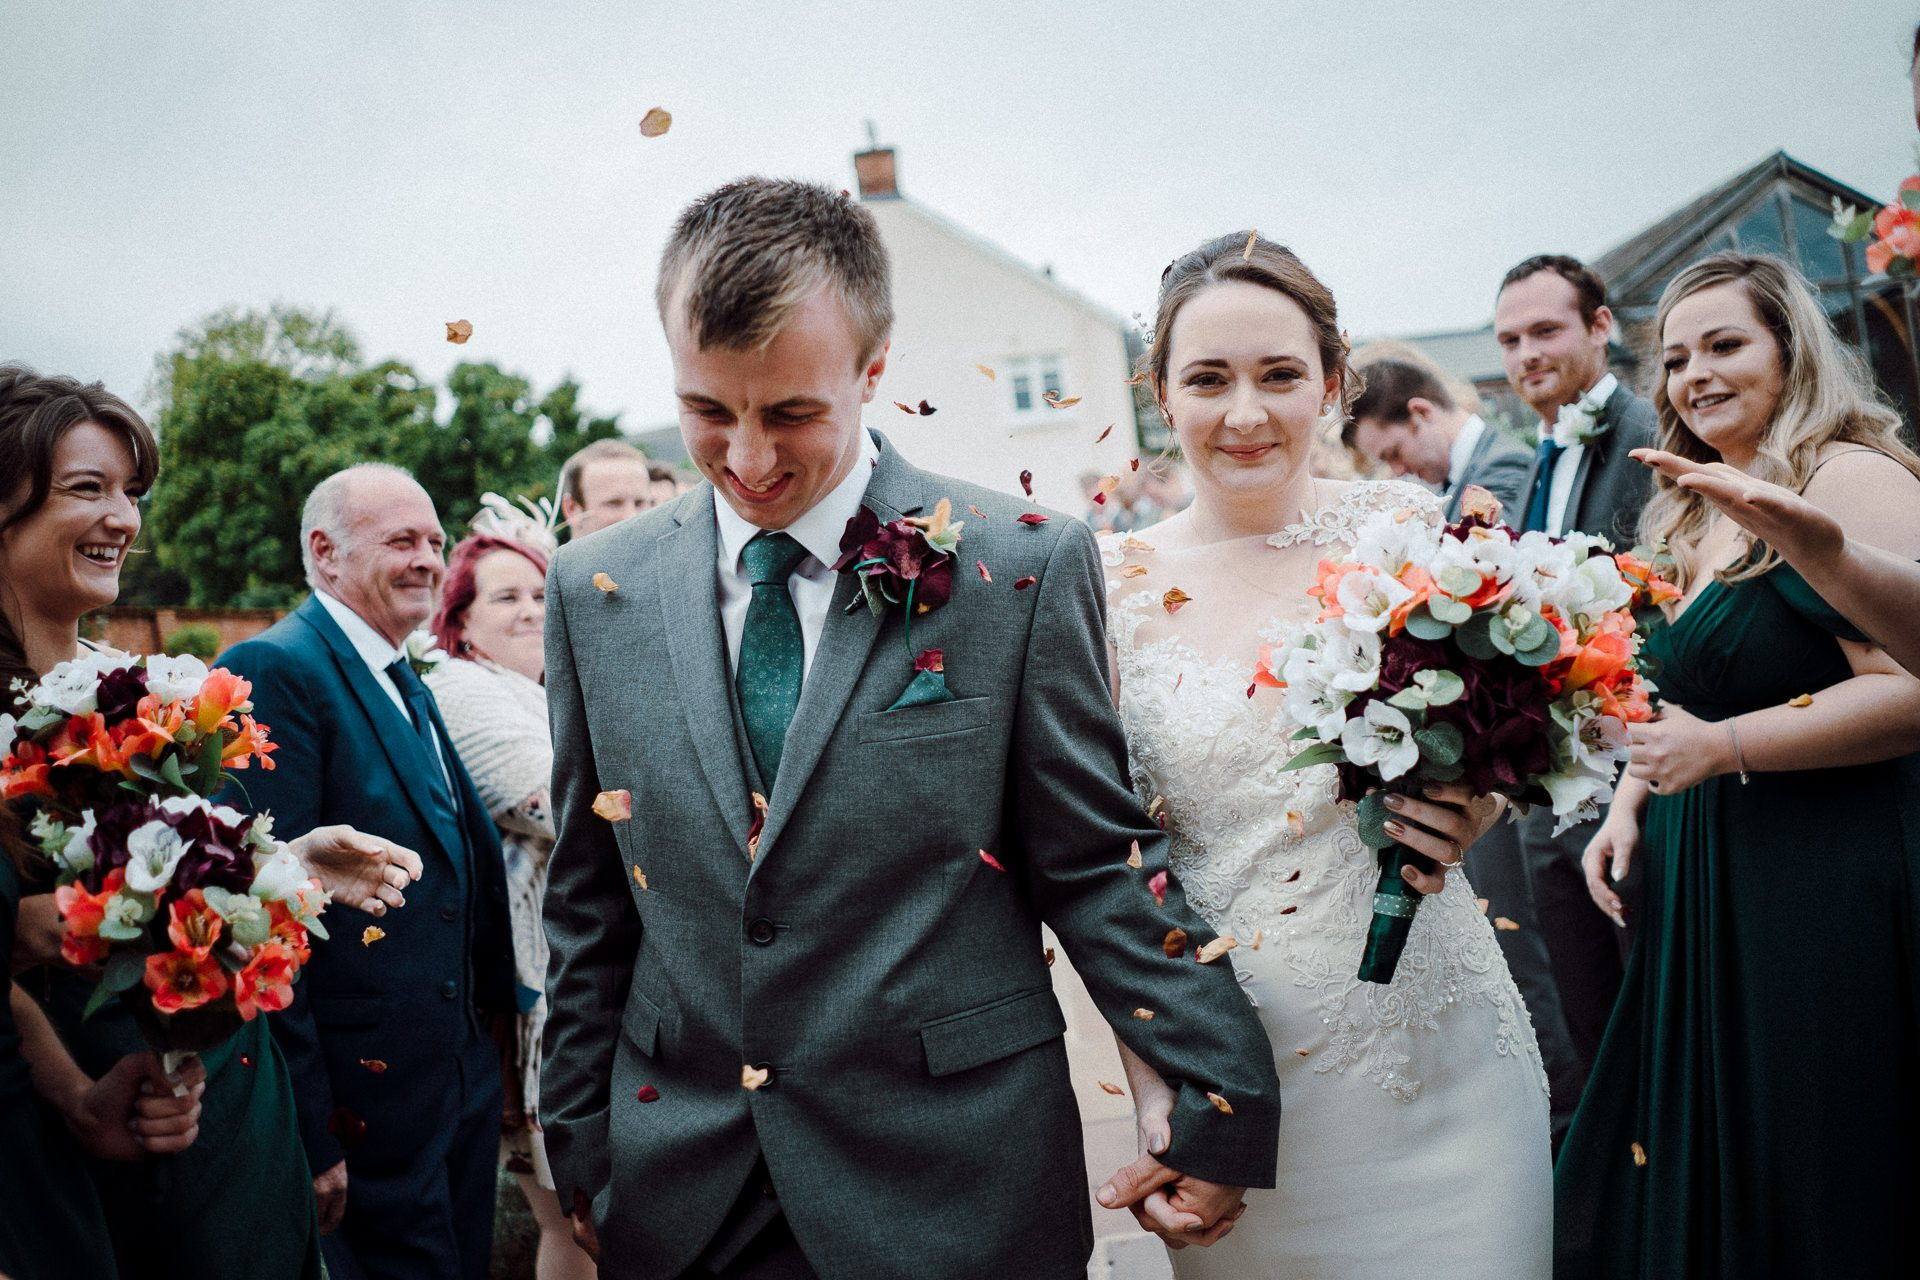 0129-DEVON-SOMERSET-WEDDING-PHOTOGRAPHER-0704-BEST-OF-2019-LOUISE-MAY-DEVON-SOMERSET-WEDDING-PHOTOGRAPHY-20191028-14-58-30-LM102841